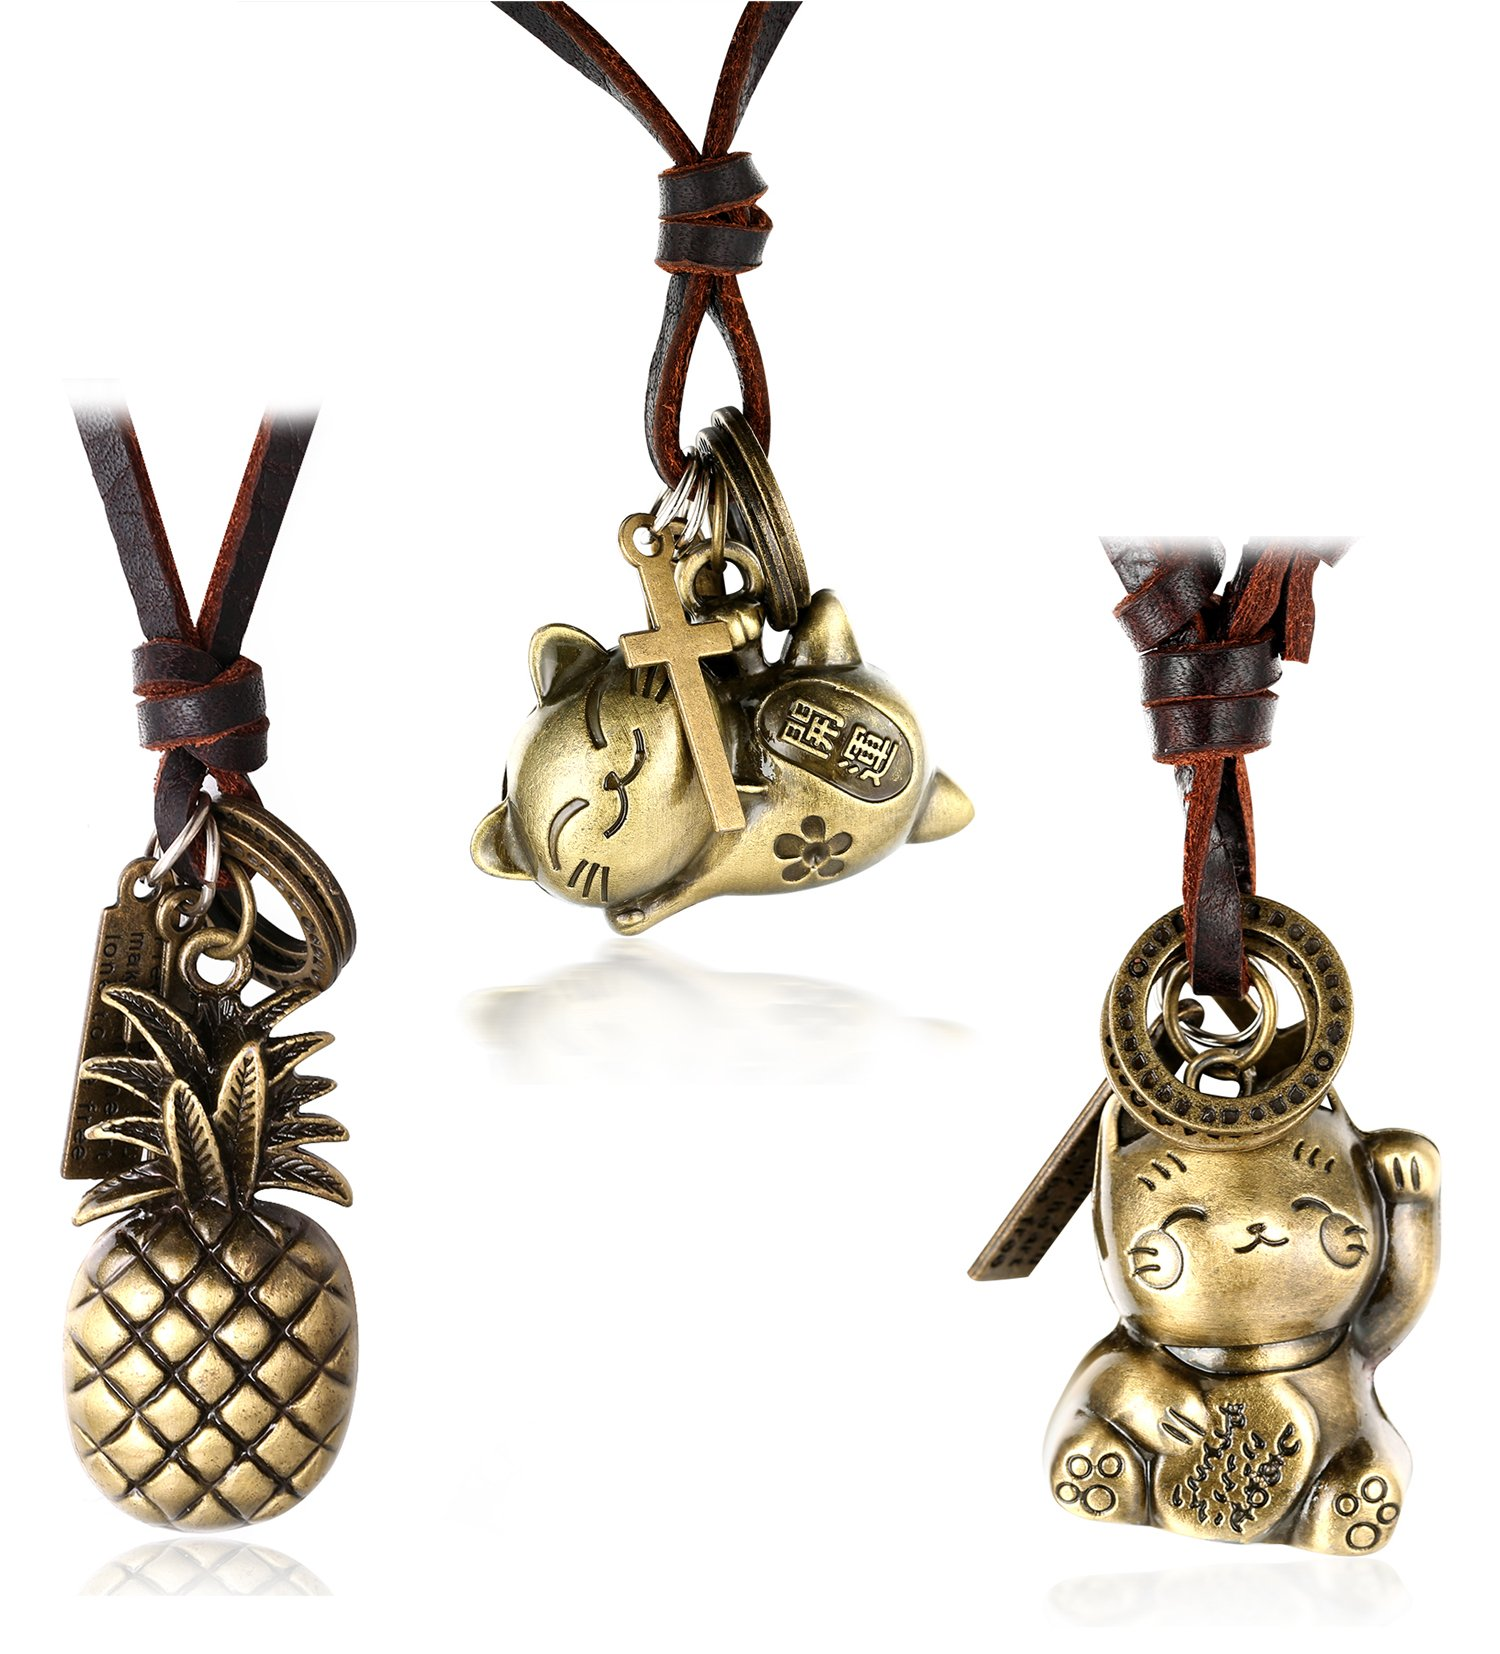 Halukakah WILDS HUNTER Men's Genuine Leather Cord HAPPINESS RICH Attract Fortune Cat GOOD LUCK Pineapple Pendant with Size Adjustable Russian Knot Necklace Set FREE Giftbox